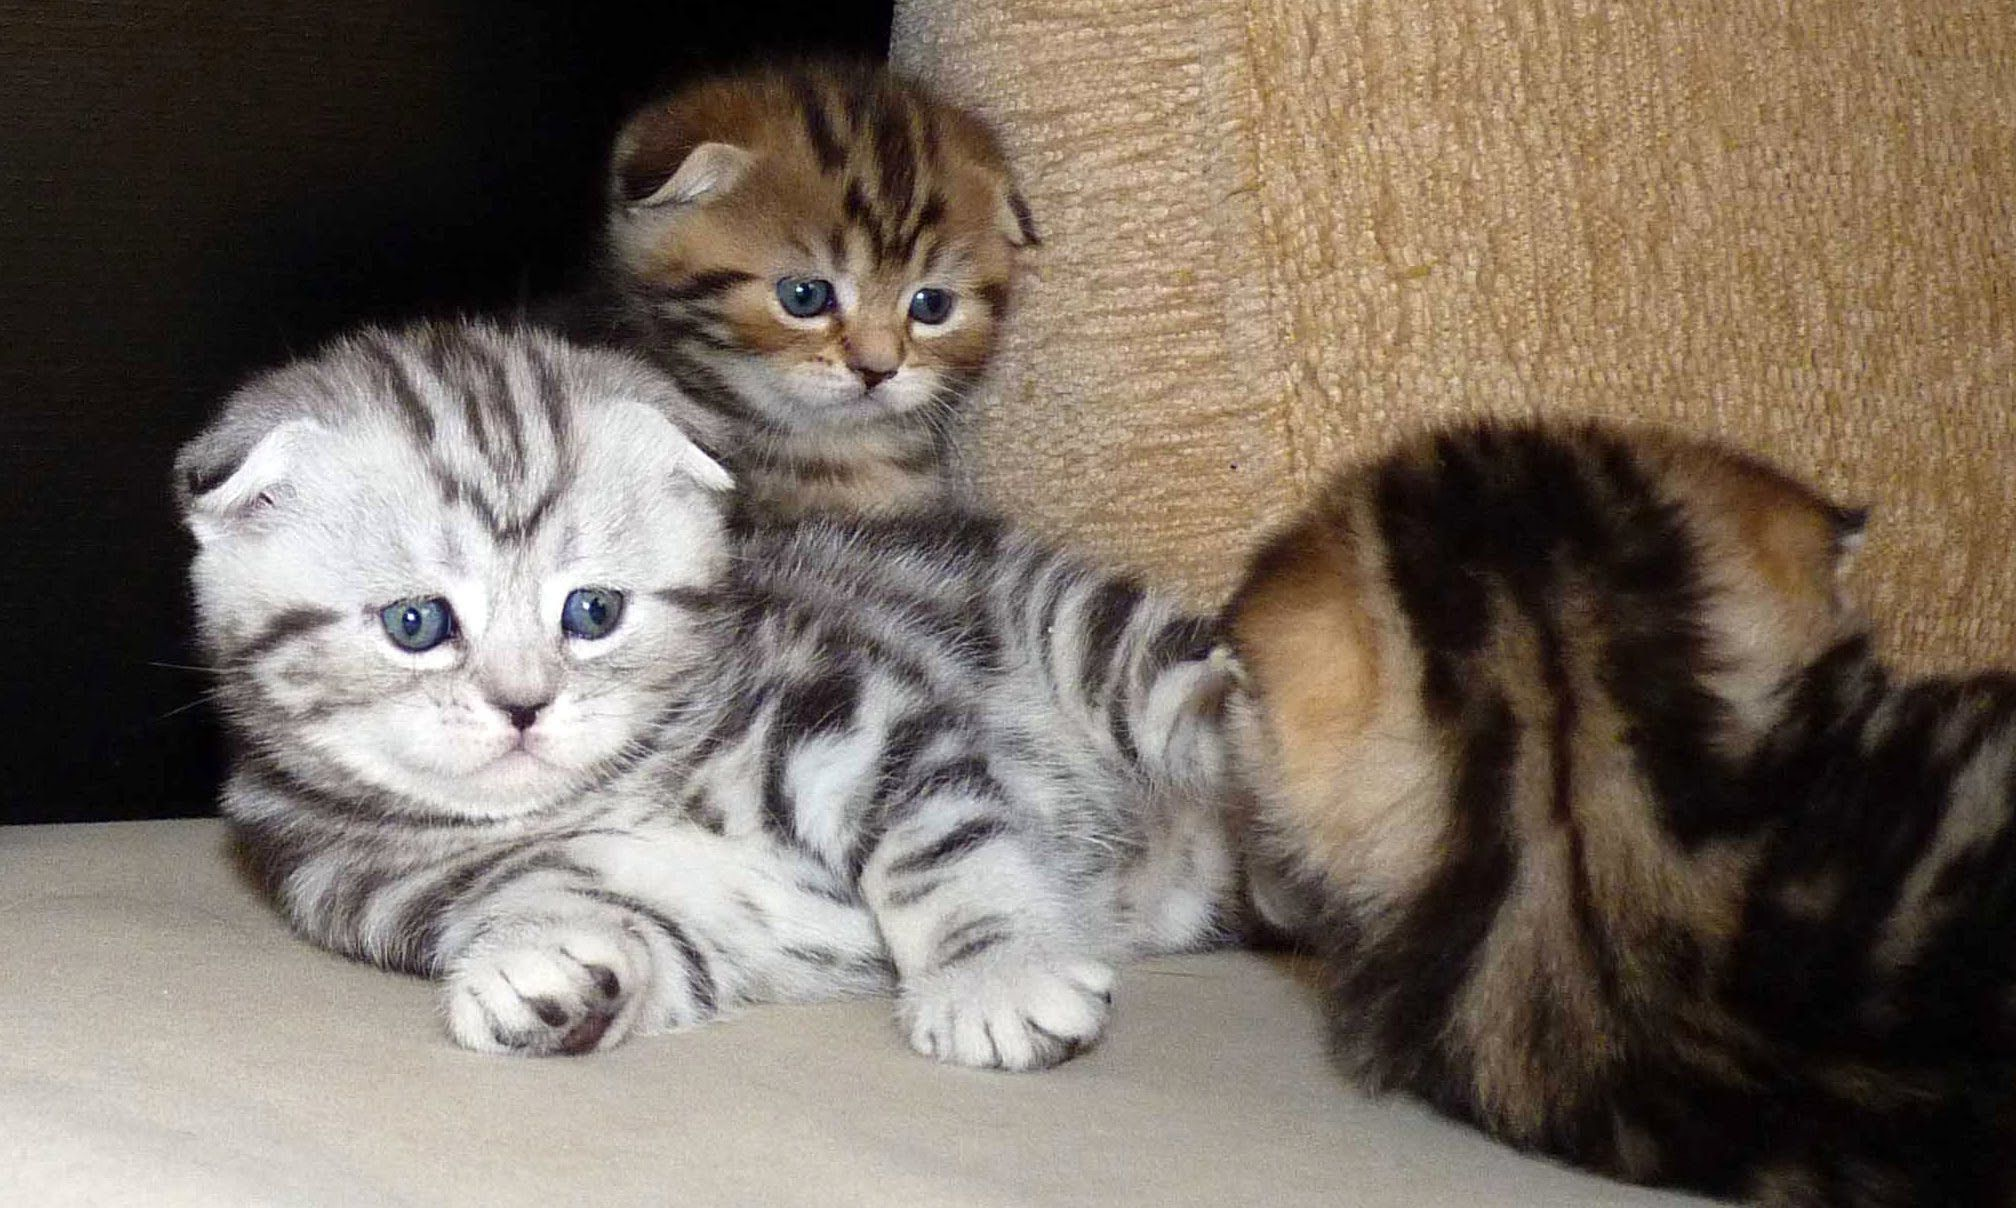 Cute Scottish Fold Scottish Straight Red Tabby And Black Silve R Aww Scottish Fold Kittens Cute Cats Kittens Funny